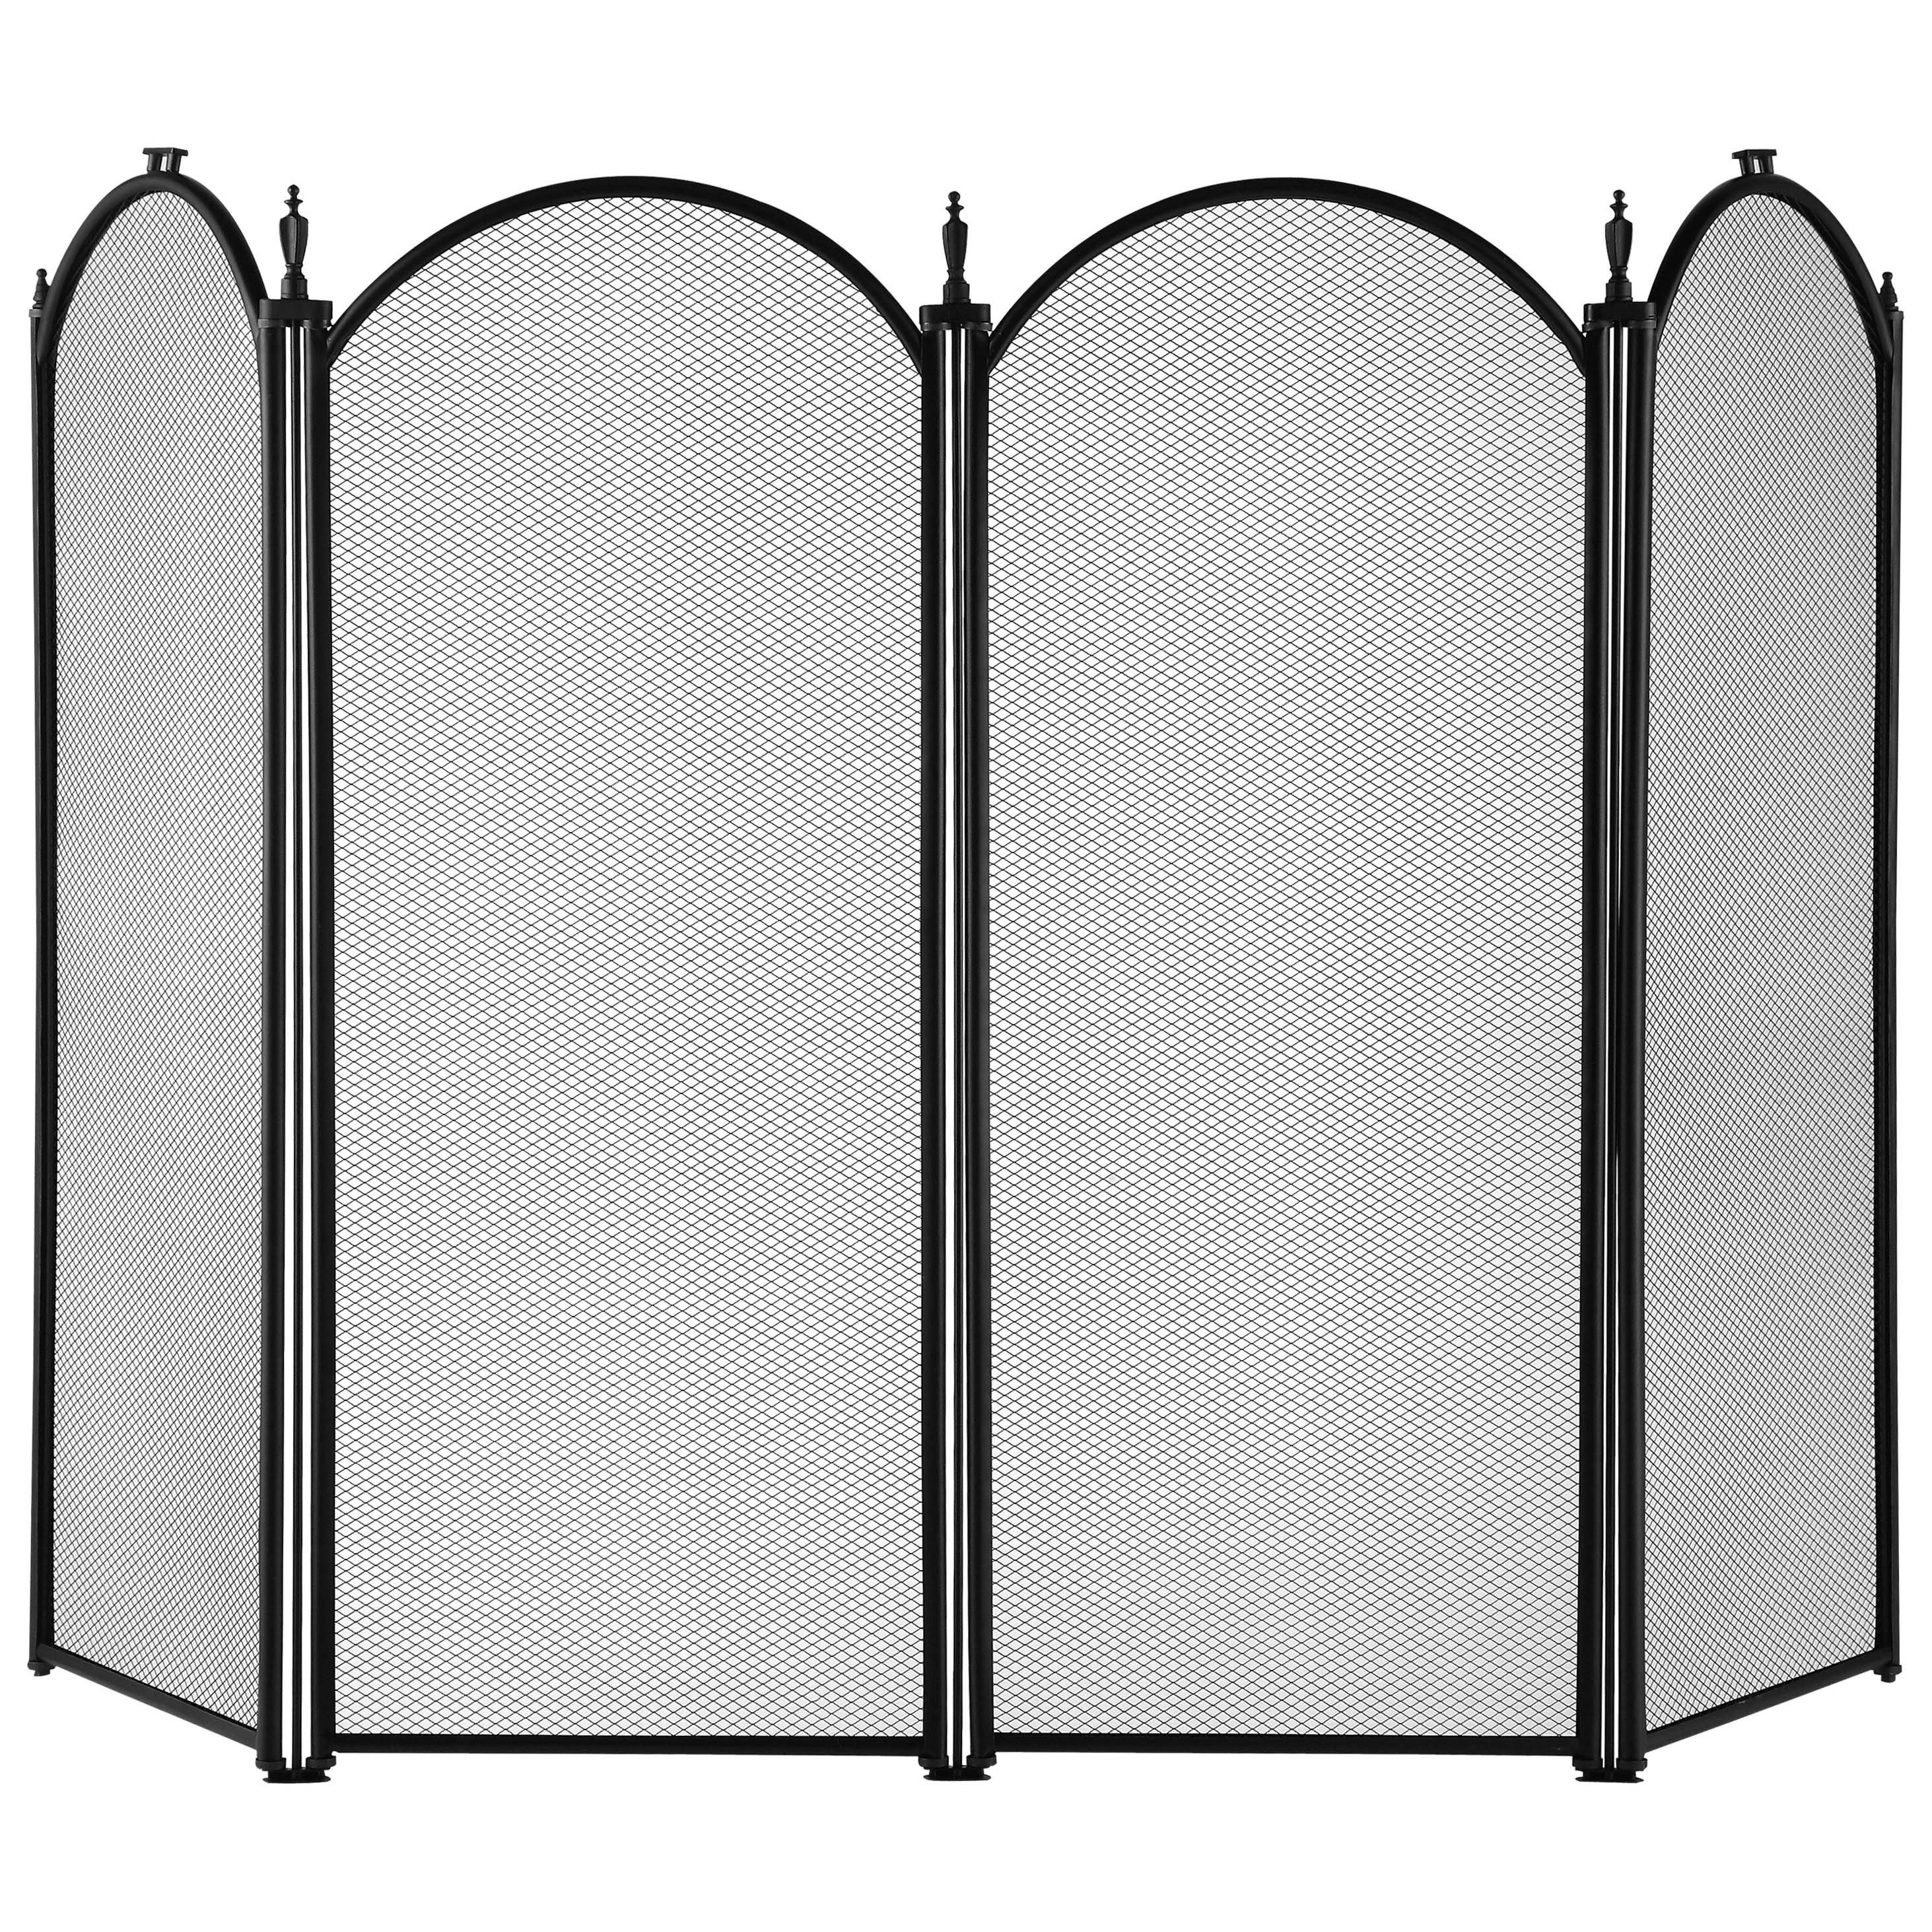 Picture of Simple Spaces S41010BK-C3L Fireplace Screen, 51-1/2 in W, 32 in H